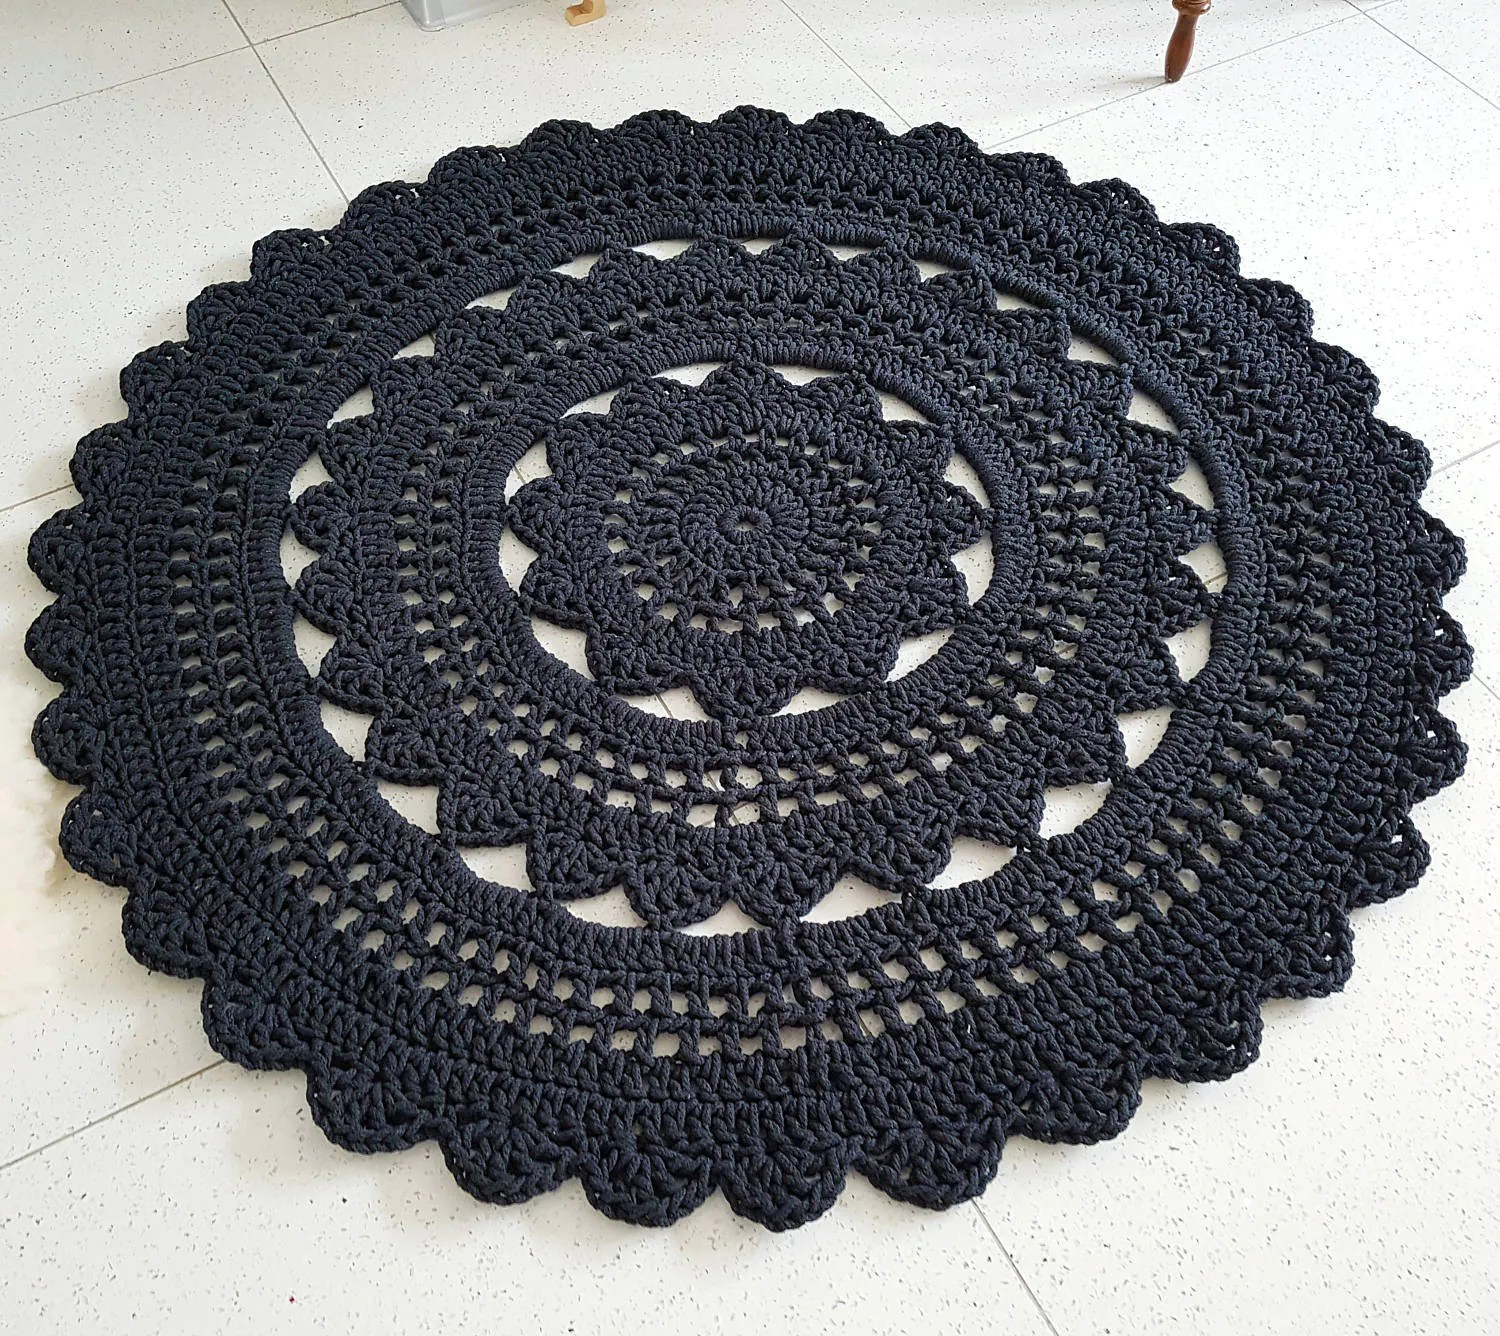 Shabby Chic Teppich Black Large Doily Rug Tapis Bohemian Hippie Shabby Chic Country Bedroom Rustic Floor Decor Teppich Rund Alfombra Trapillo Modern Carpet